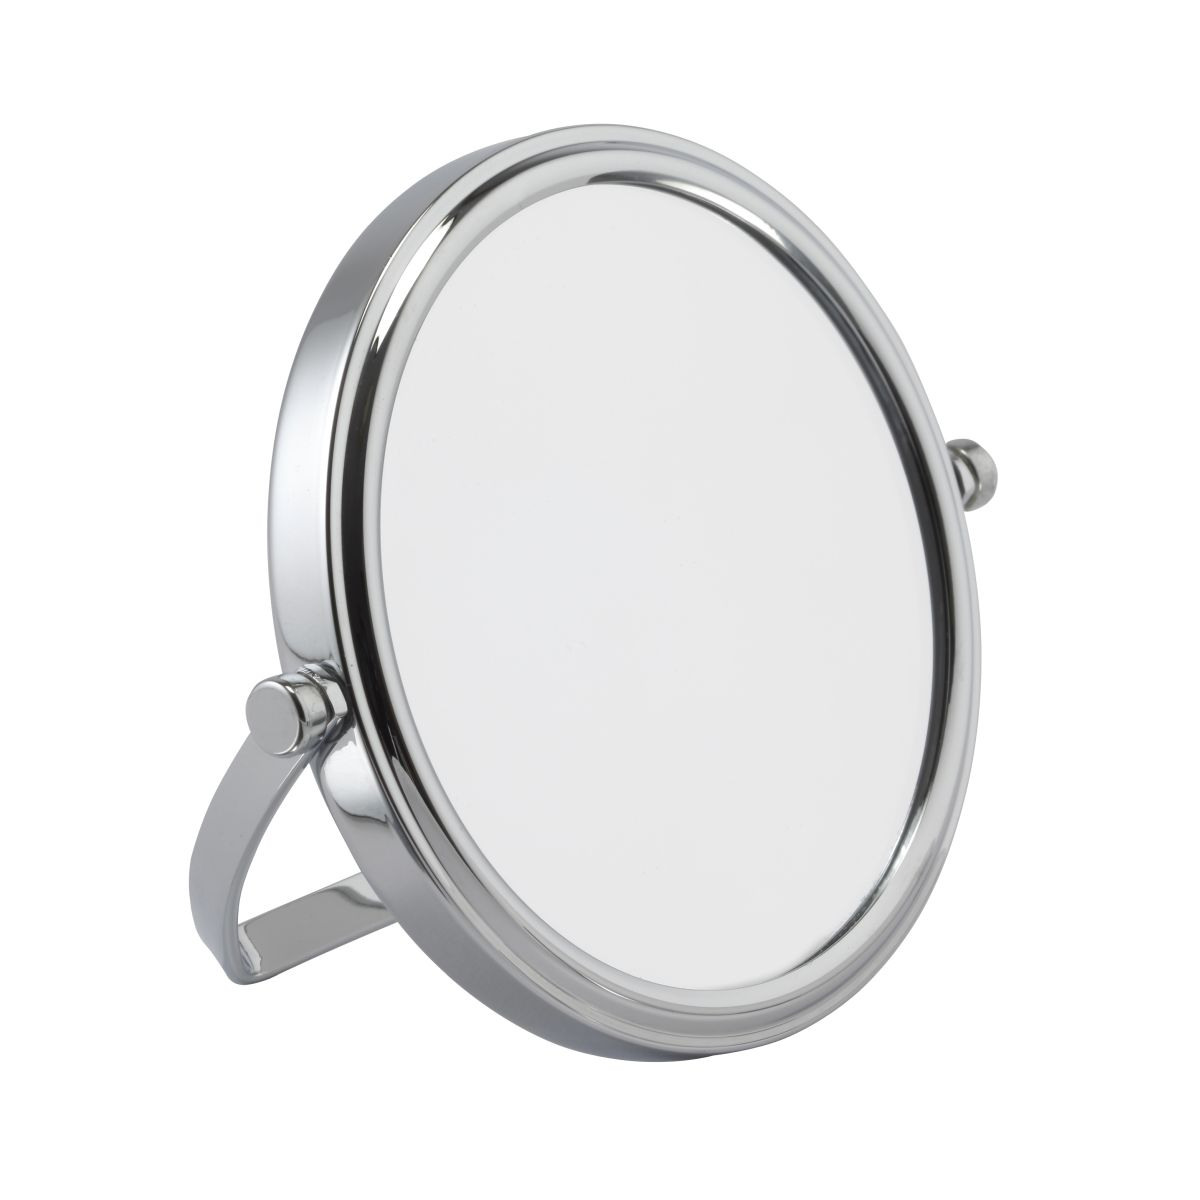 702 10c 1 - 7x Magnification Chrome Travel Mirror - 702/10CHR